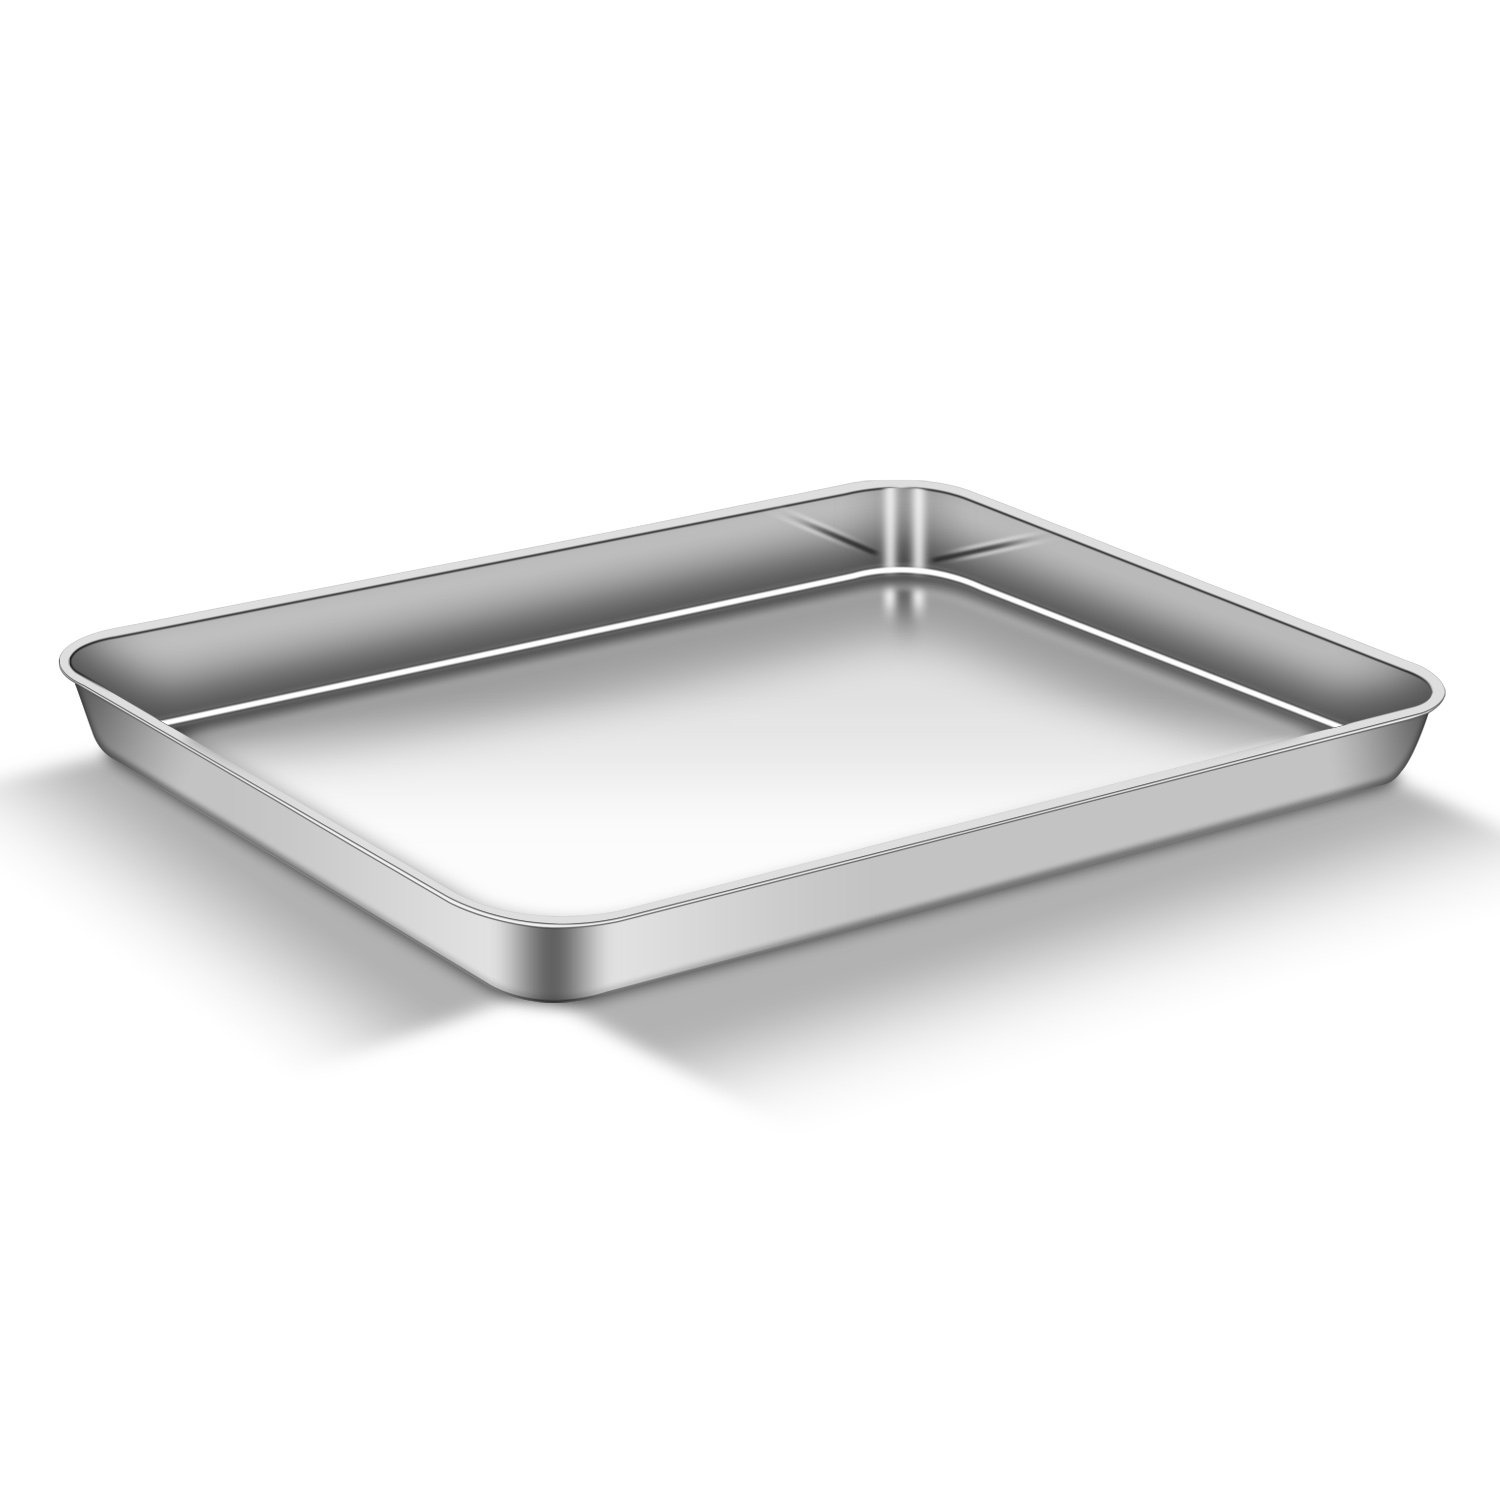 AEMIAO Baking Sheet (16'' x 12'' x1''), Stainless Steel 18/0 Bakeware Cookie Sheet Toaster Cake Pizza Oven Baking Pan Tray for Home Kitchen, Healthy Non Toxic, Mirror Finish Rust Free, Dishwasher Safe